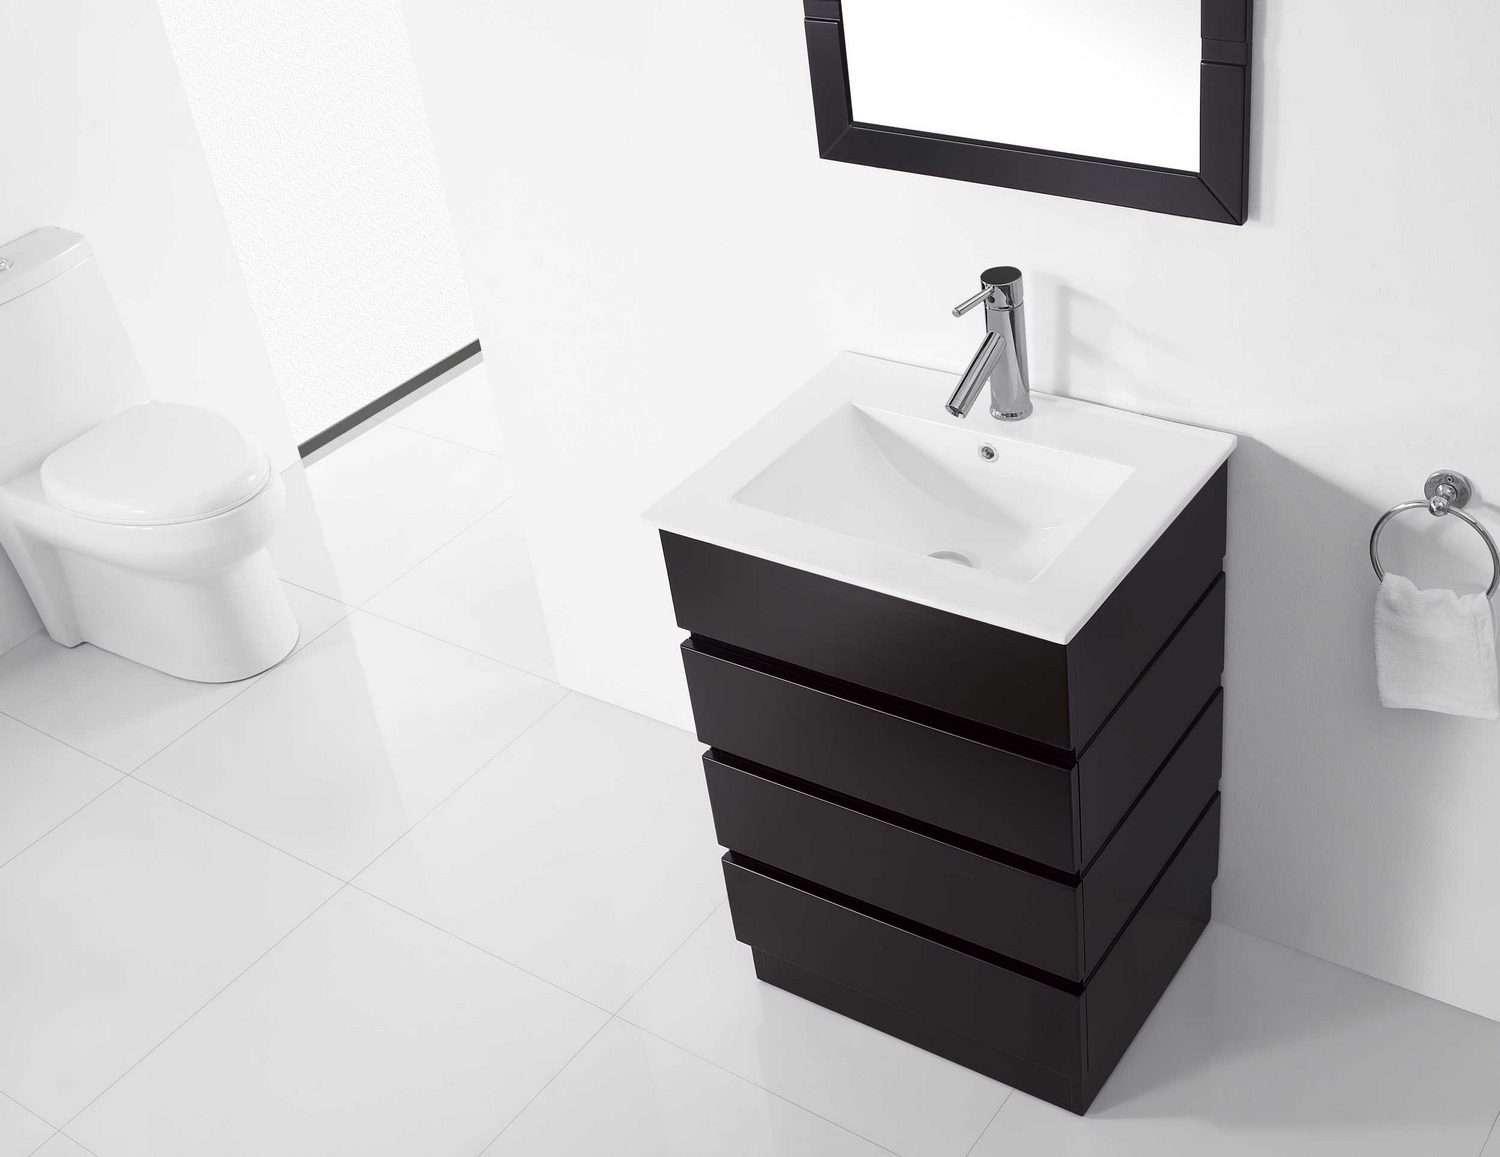 Virtu Usa Bruno 24 Single Bathroom Vanity Cabinet Set In